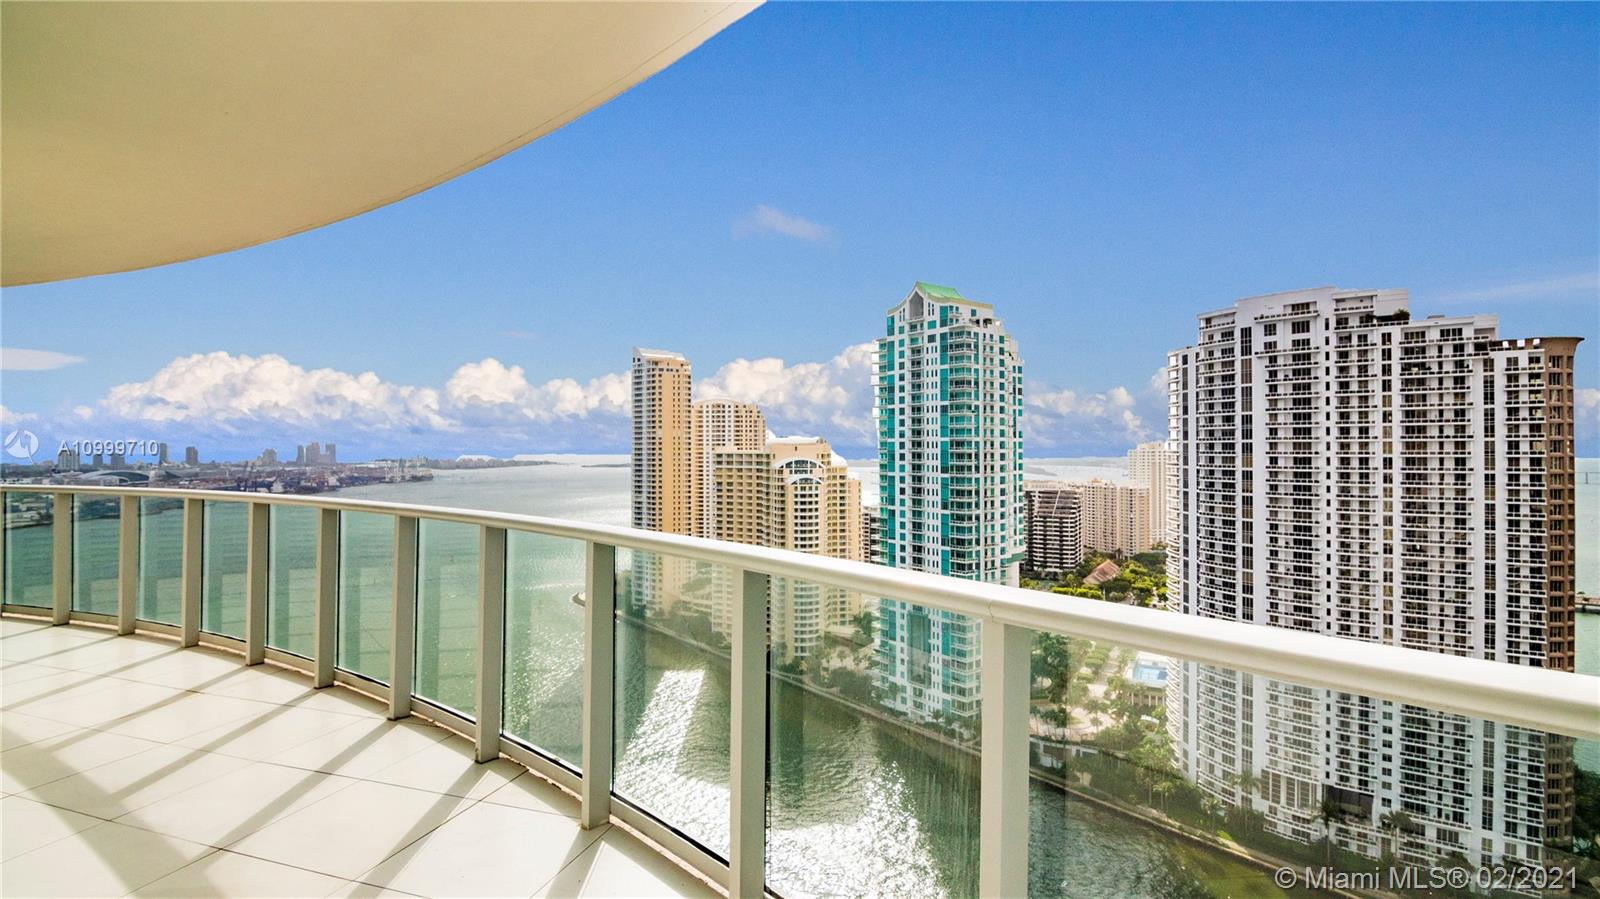 Breathtaking ocean views from every room of this stunning apartment. With an open and warm floor-plan, ideal to entertain while enjoying the unobstructed panoramic views, this 2 bedroom, 2 baths unit with the most desirable split plan and Southeastern exposure in the building. Enjoy endless sunrises from the over-sized balcony and views to the intracoastal from every room. Met 1 is a luxury building that offers amazing amenities, such as, heated swimming pool, hot tub, fitness center, conference room and convenient party room and concierge. Centrally located and within walking distance to Whole Foods, Bayfront Park, Silverspot Cinemas, great restaurants and the Metro Mover. Easy to Show and Priced to Sell!